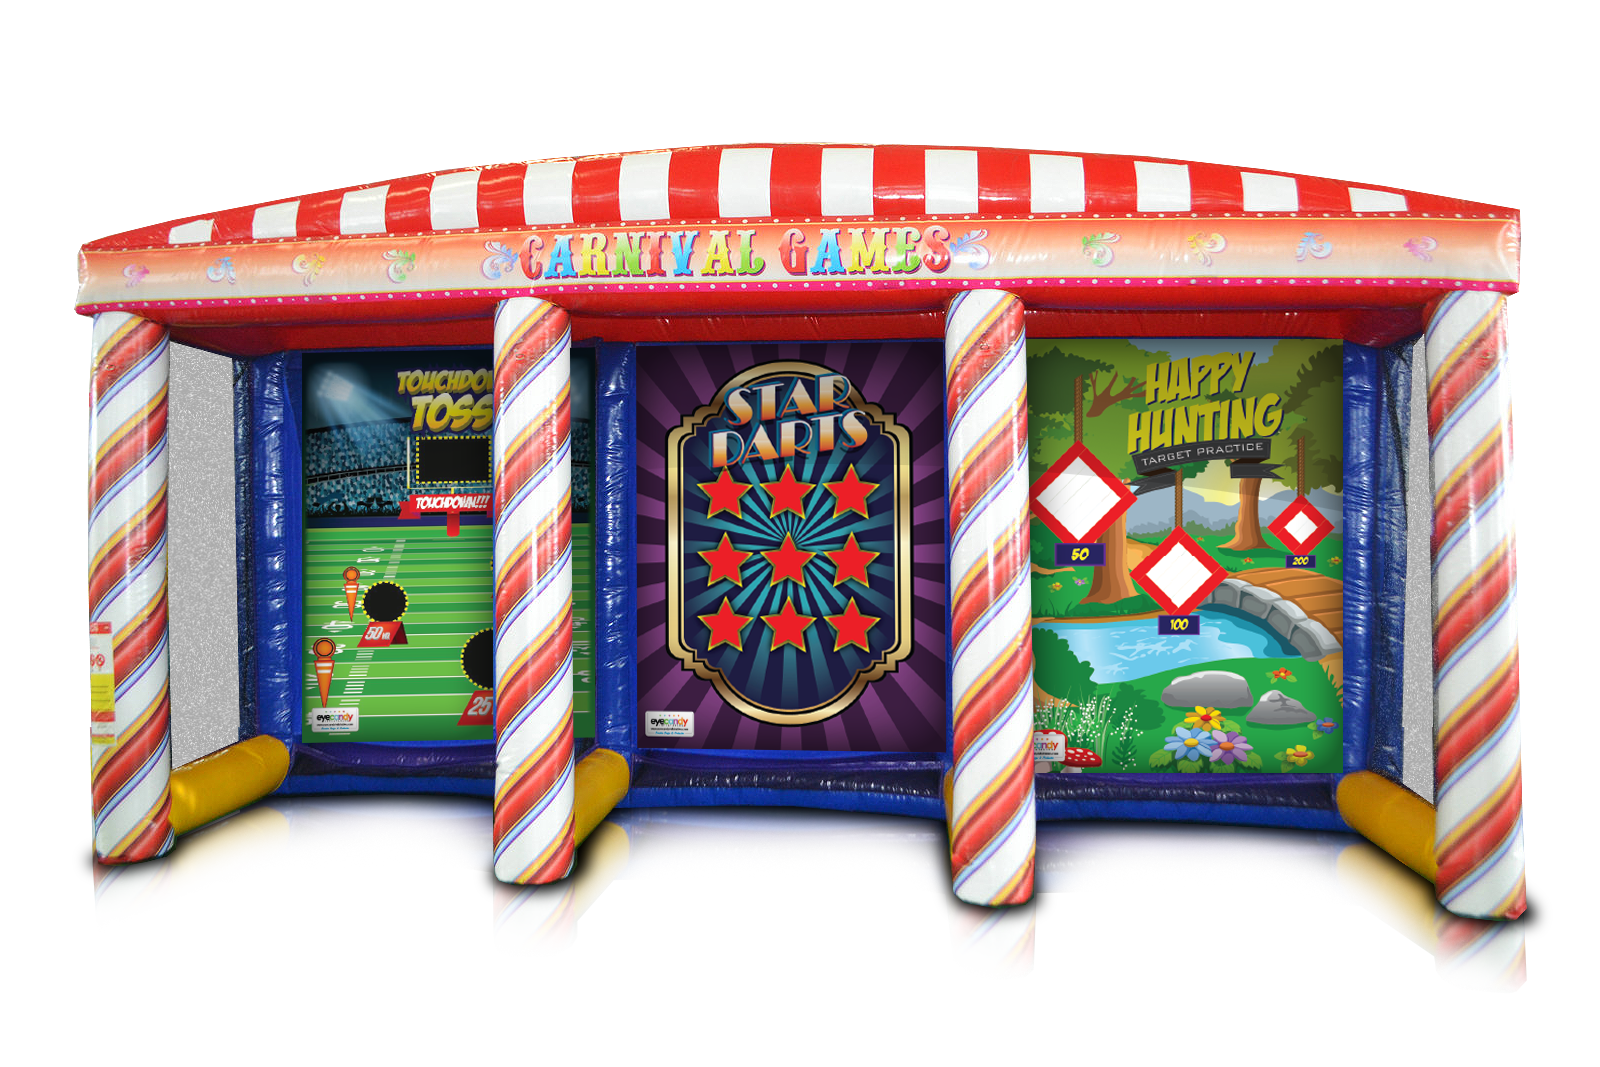 Carnival games png. In midway rental